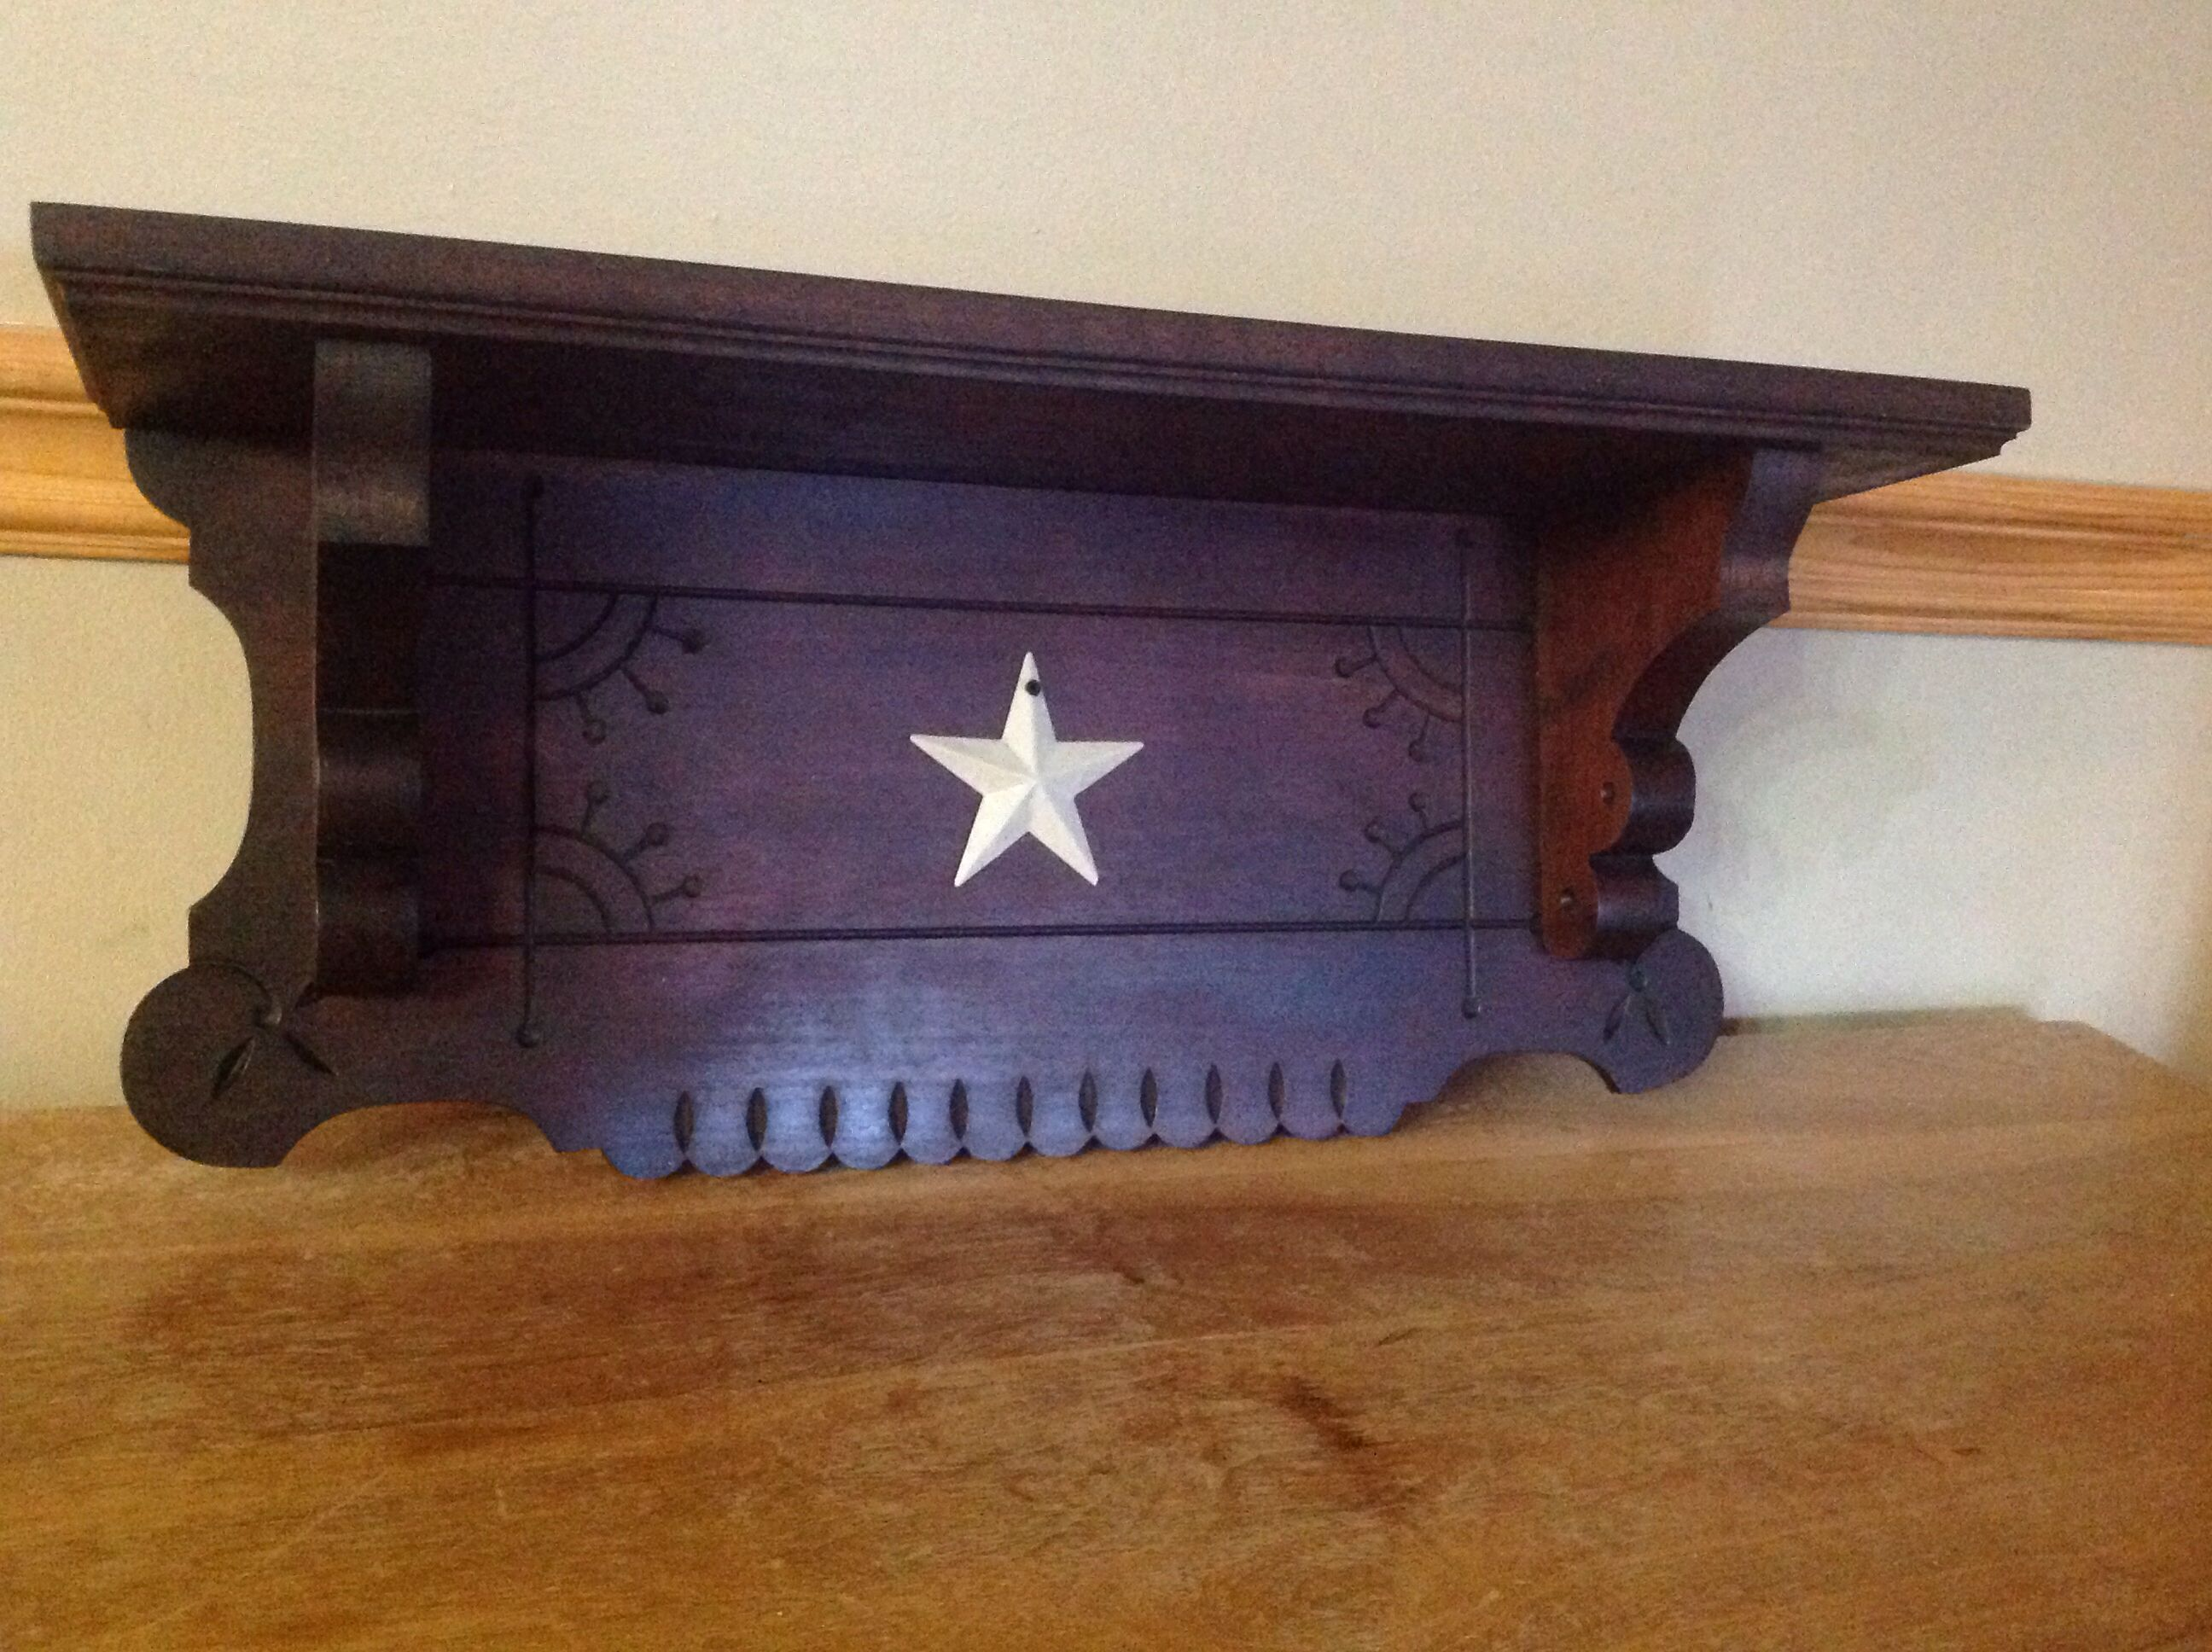 Shelf made from antique pump organ (circa 1896). Primitive upcycled repurposed furniture.